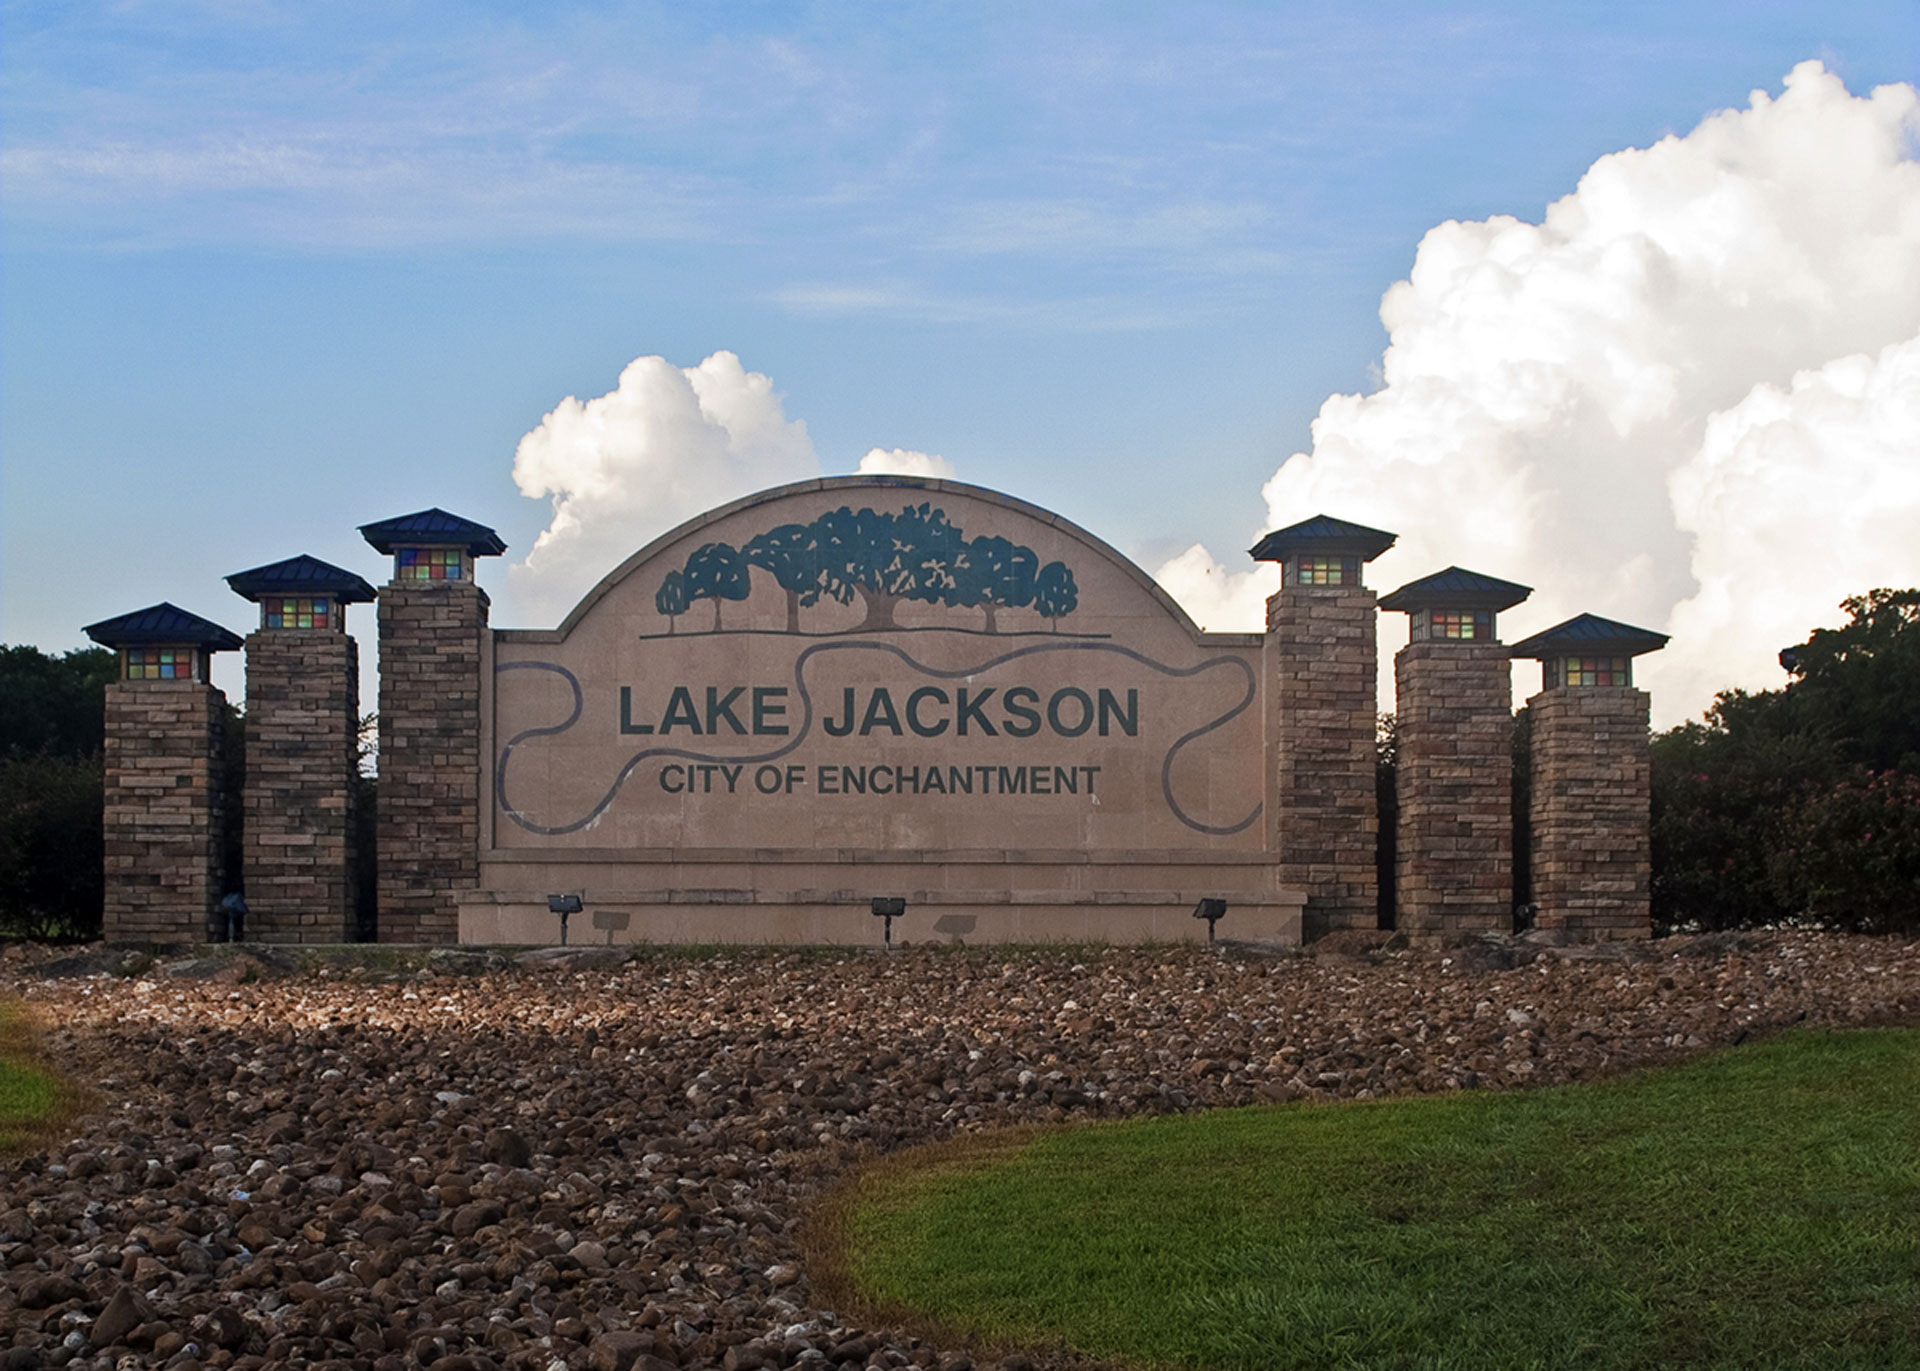 image from UT Vascular Specialists Now Available in Lake Jackson, TX